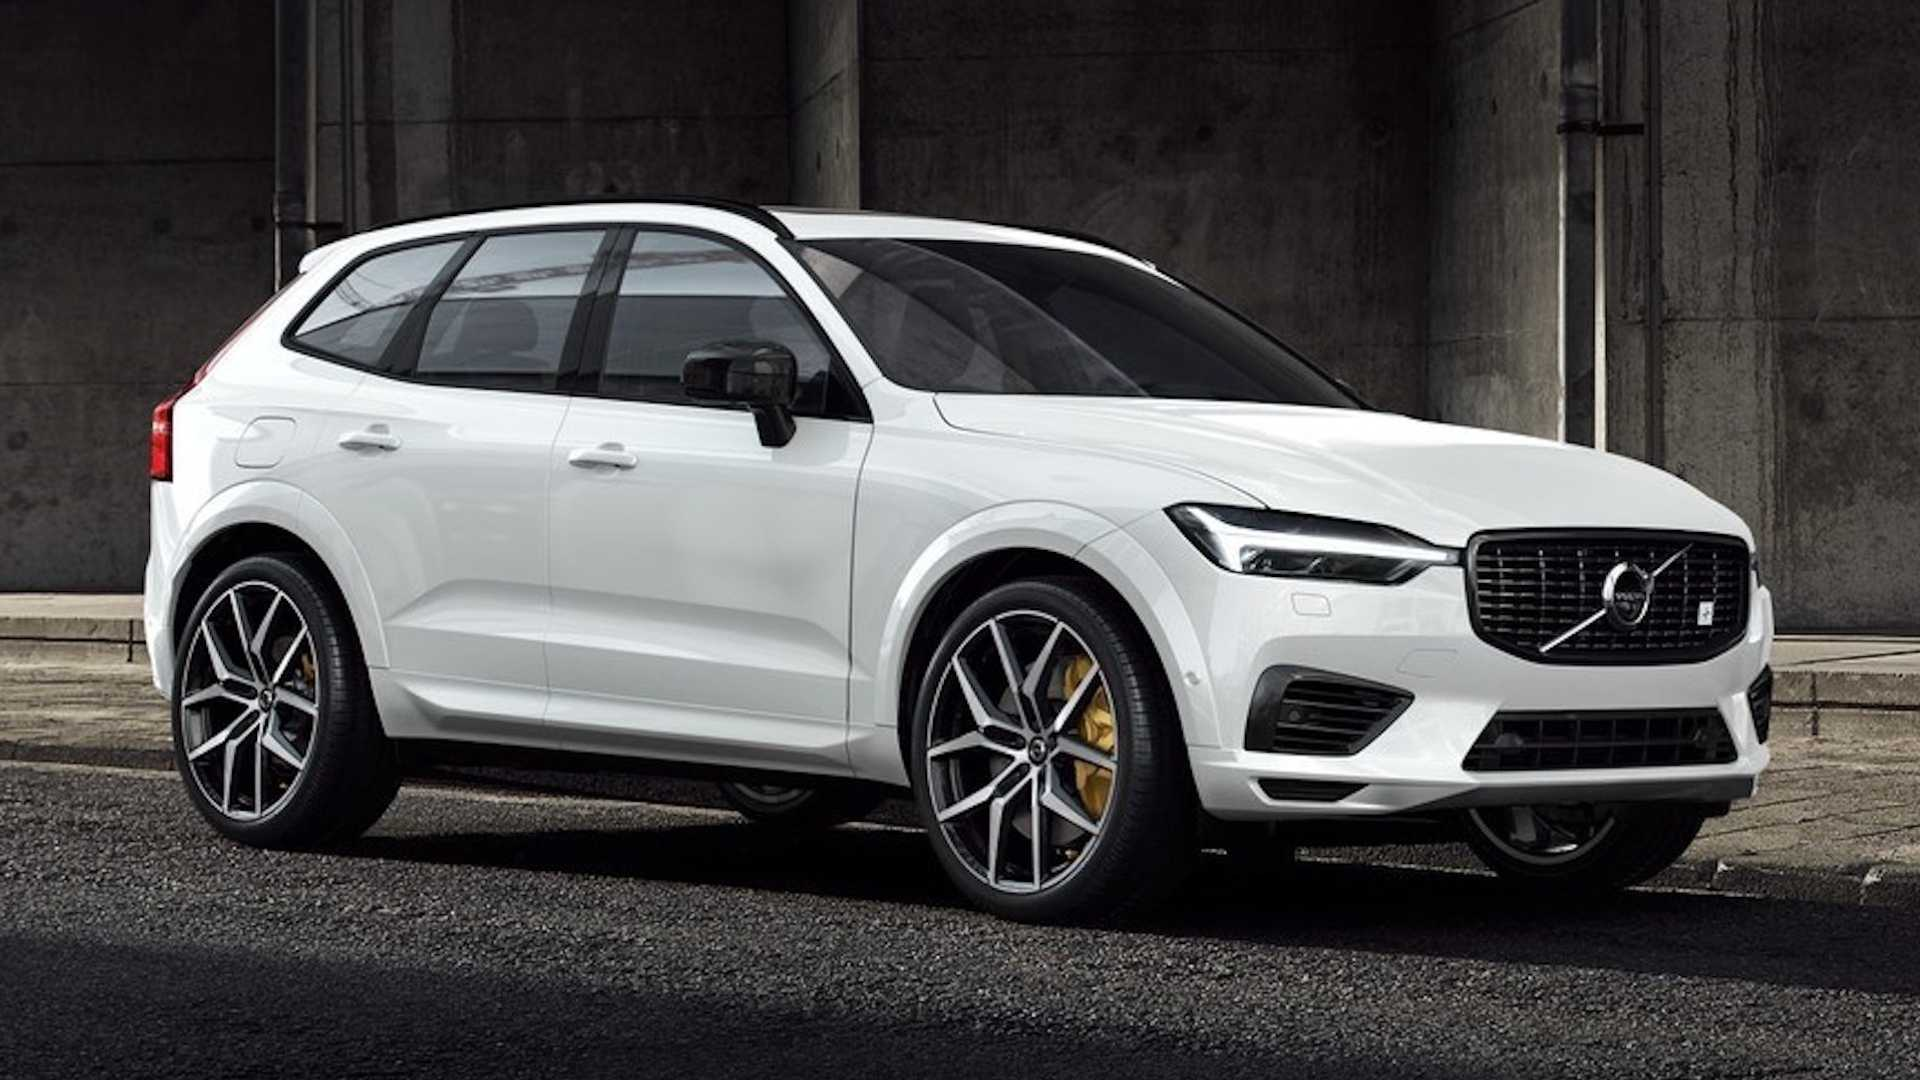 Peachy Volvo Xc60 V60 Now Pack Polestars 415 Hp Plug In Powertrain Wiring Cloud Hemtegremohammedshrineorg